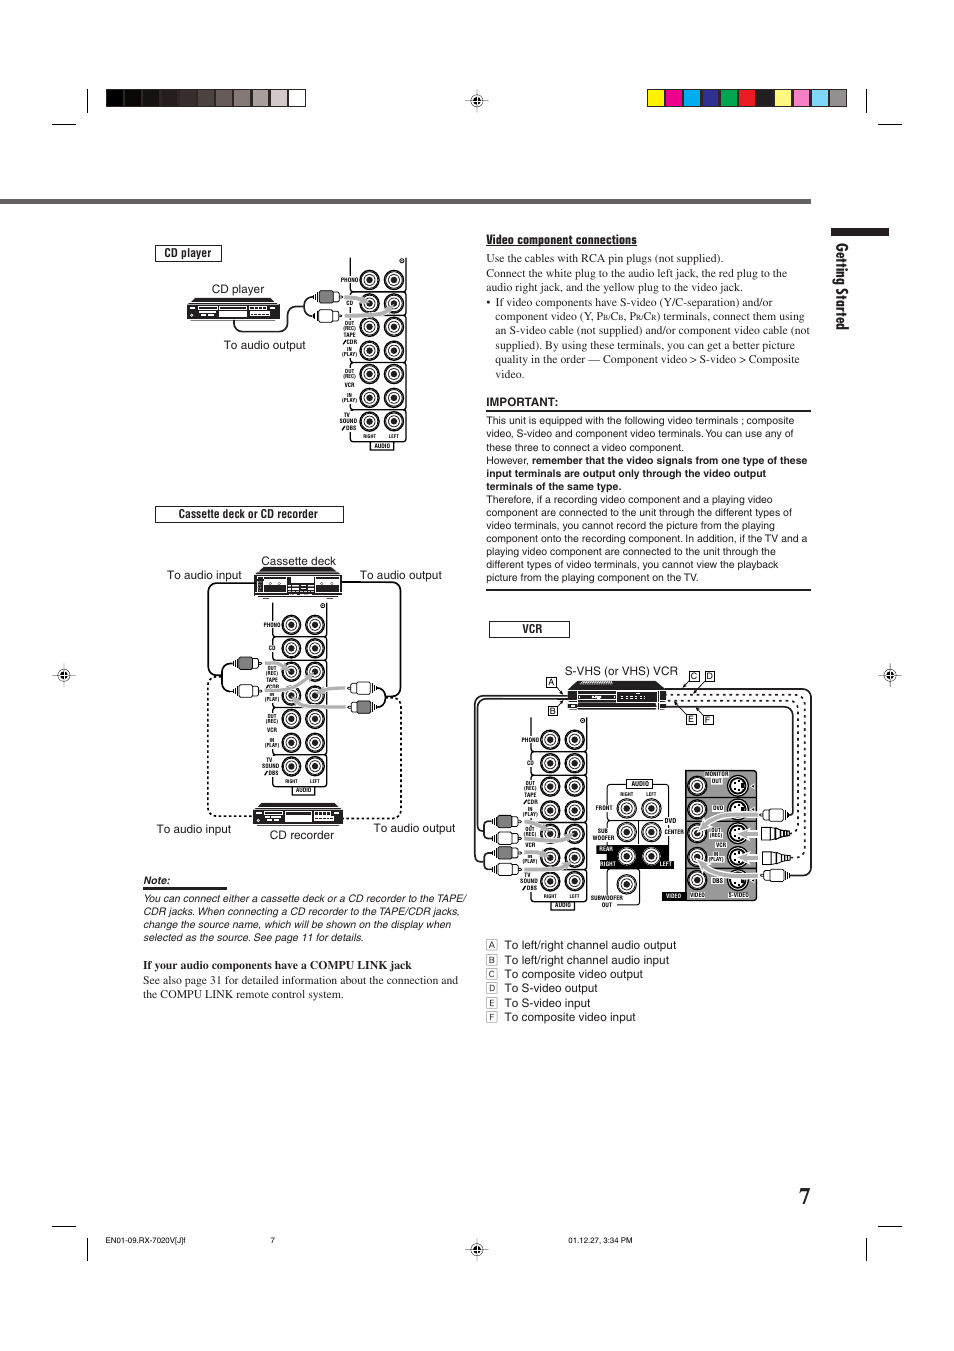 Getting started, Video component connections, Cd player